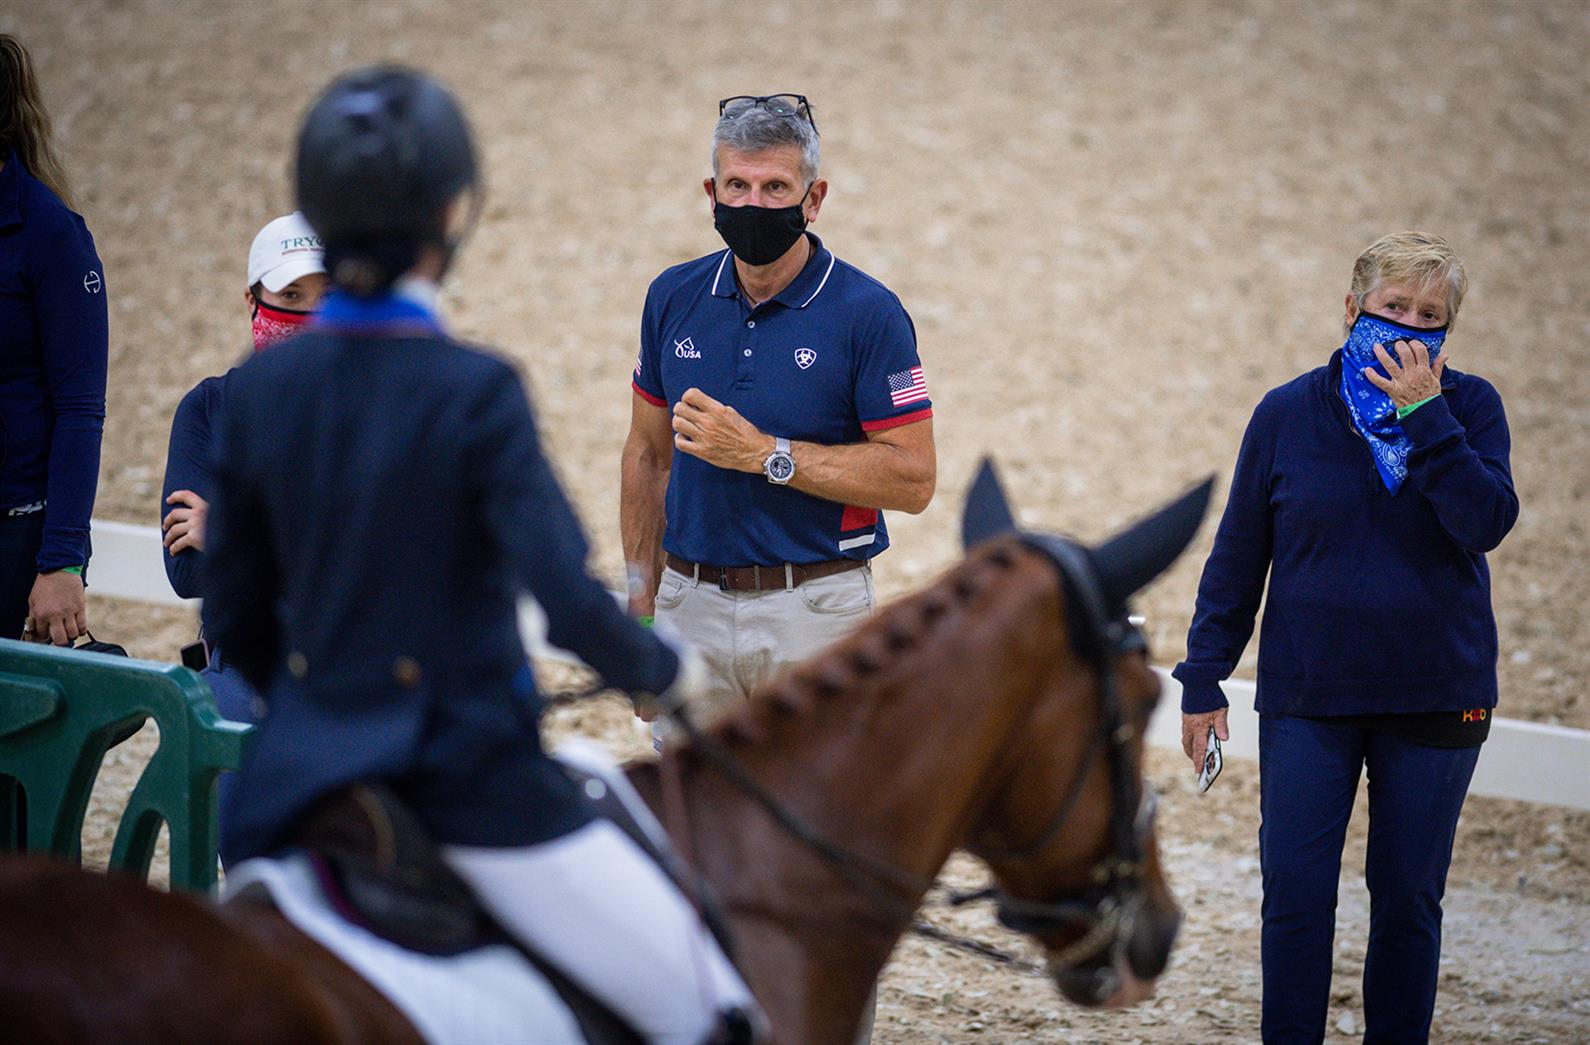 Michel Assouline coaching a rider at the 2020 USEF Para Dressage National Championship